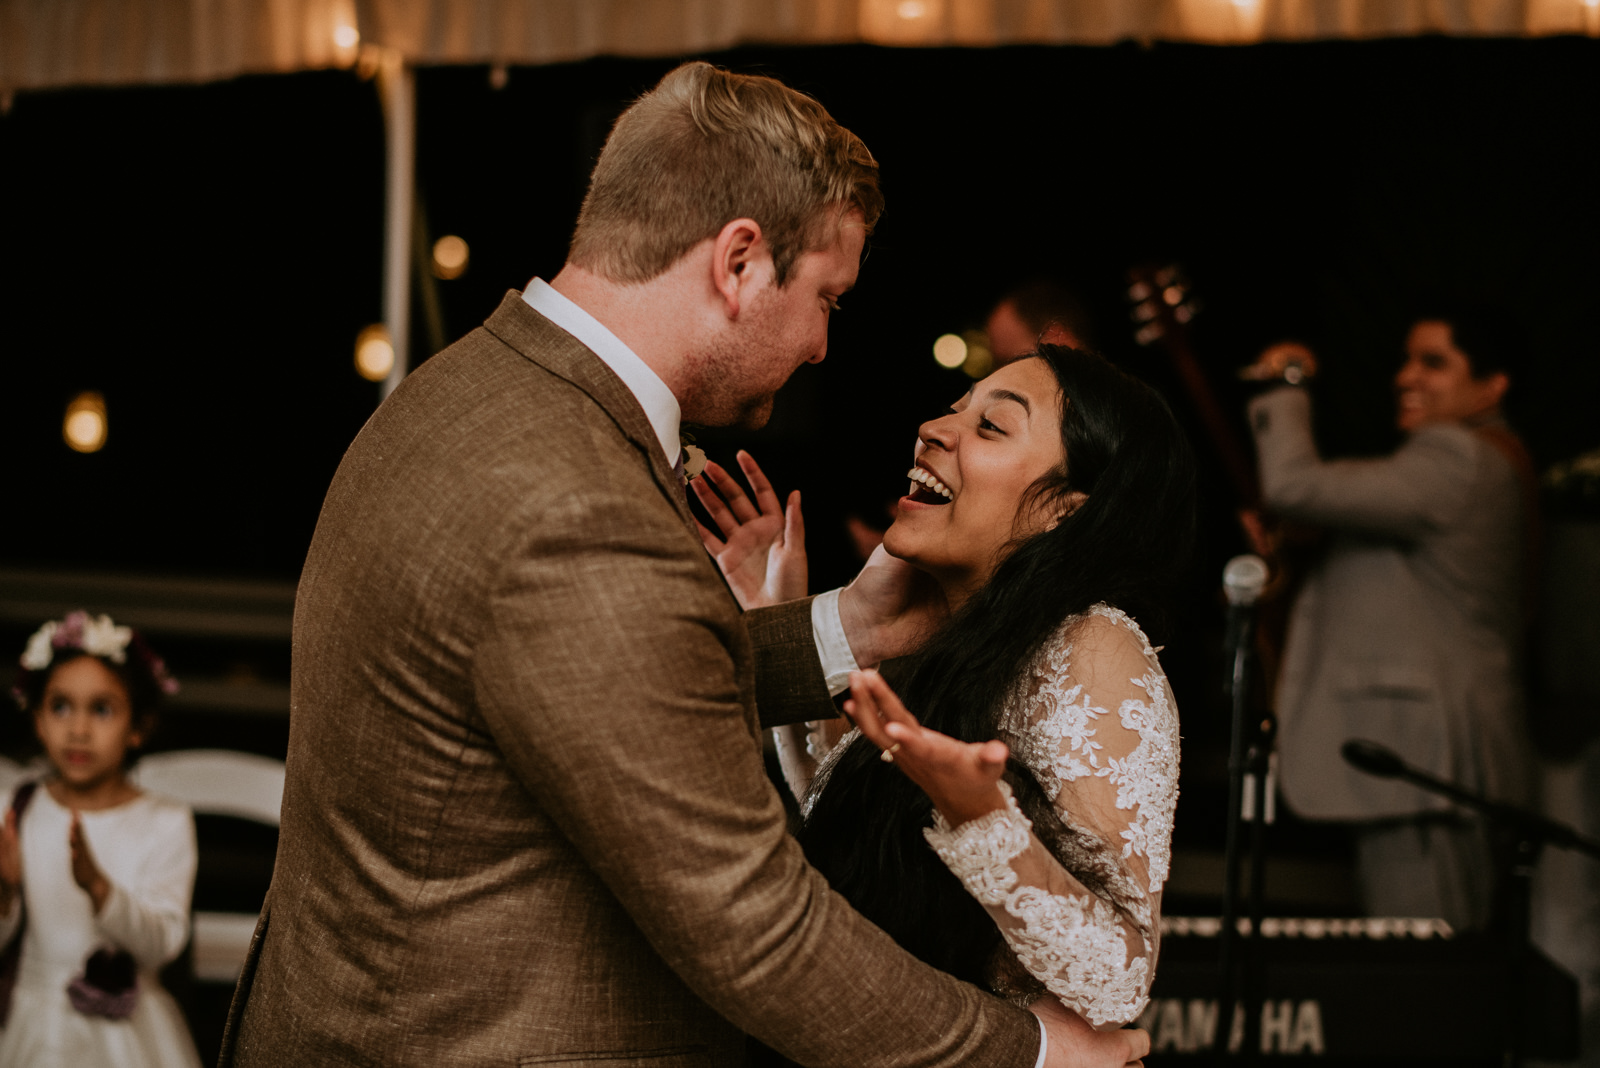 bride reacts to groom singing her a song